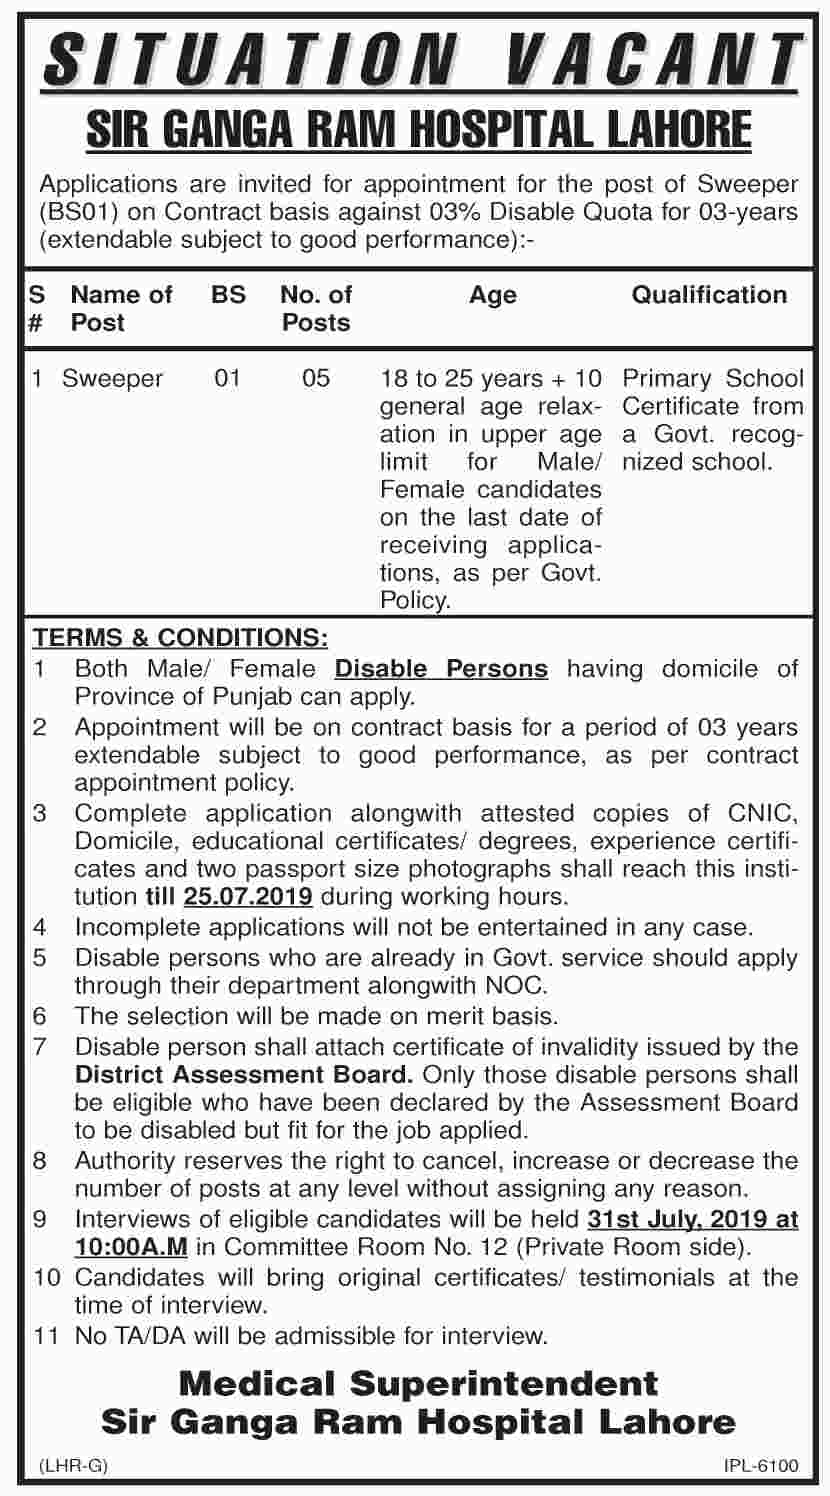 Sir Ganga Ram Hospital Lahore jobs 2019